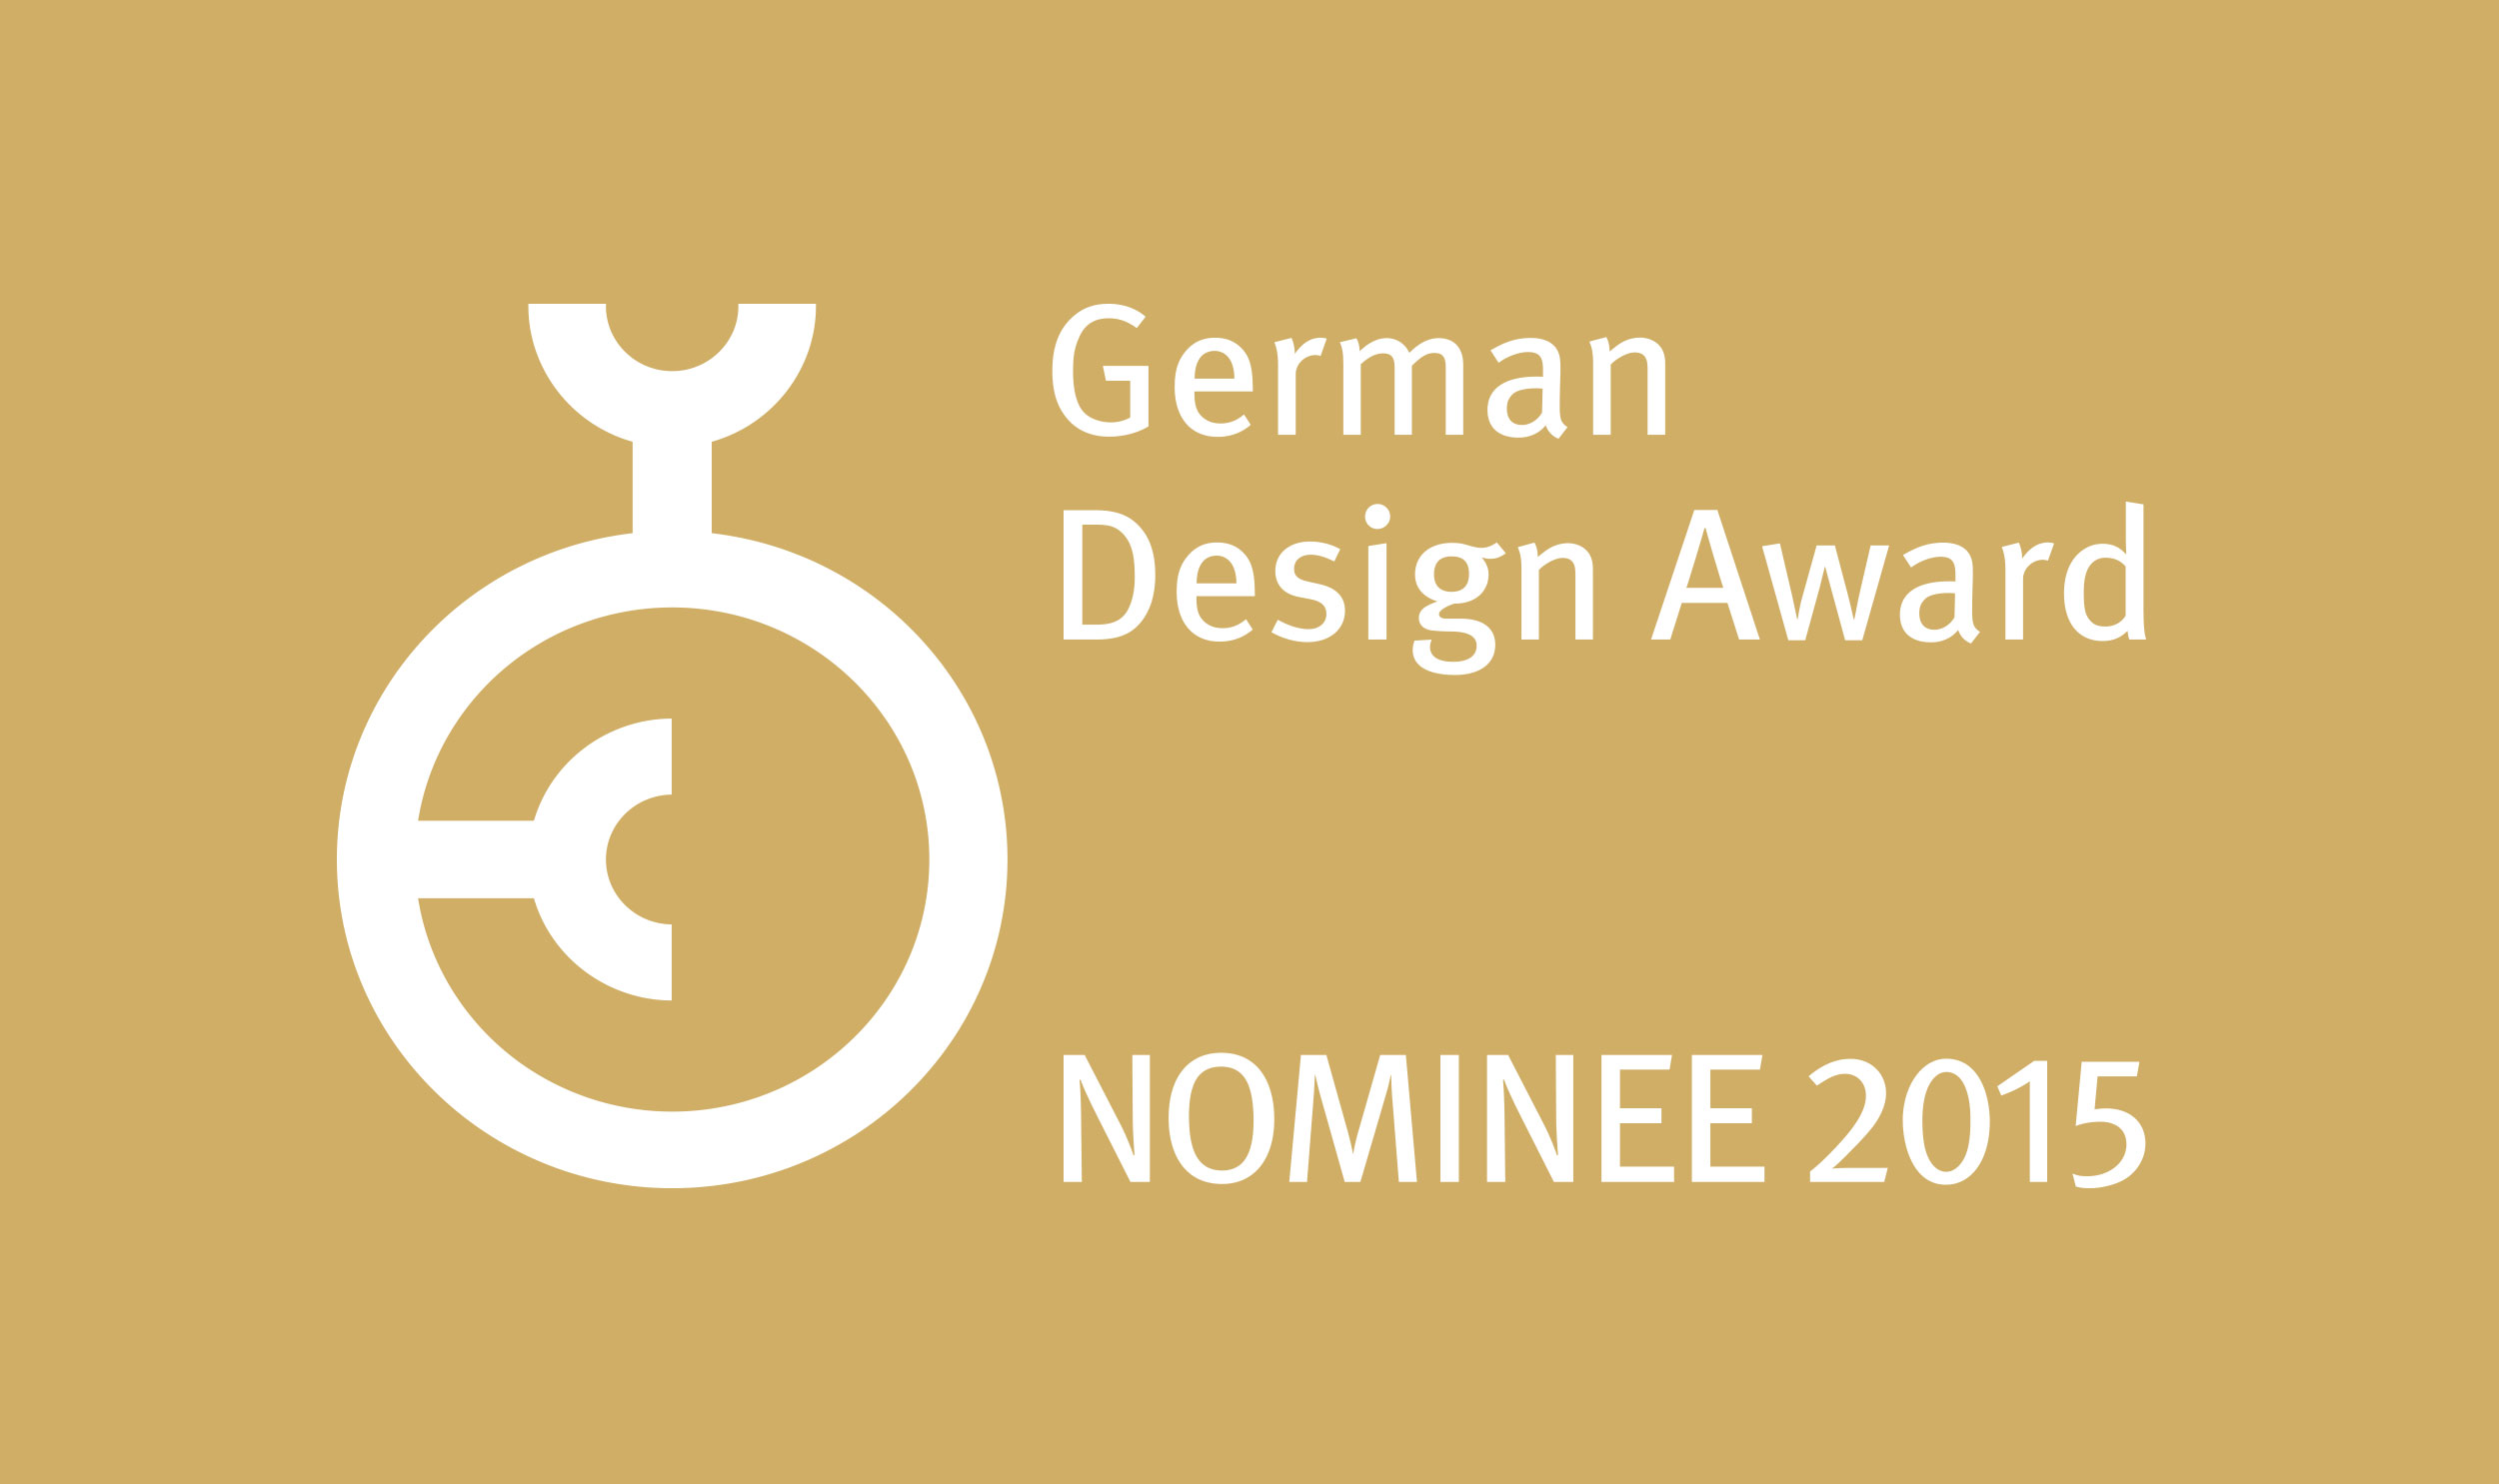 AWARD_German-Design-Award_2015_Nominee